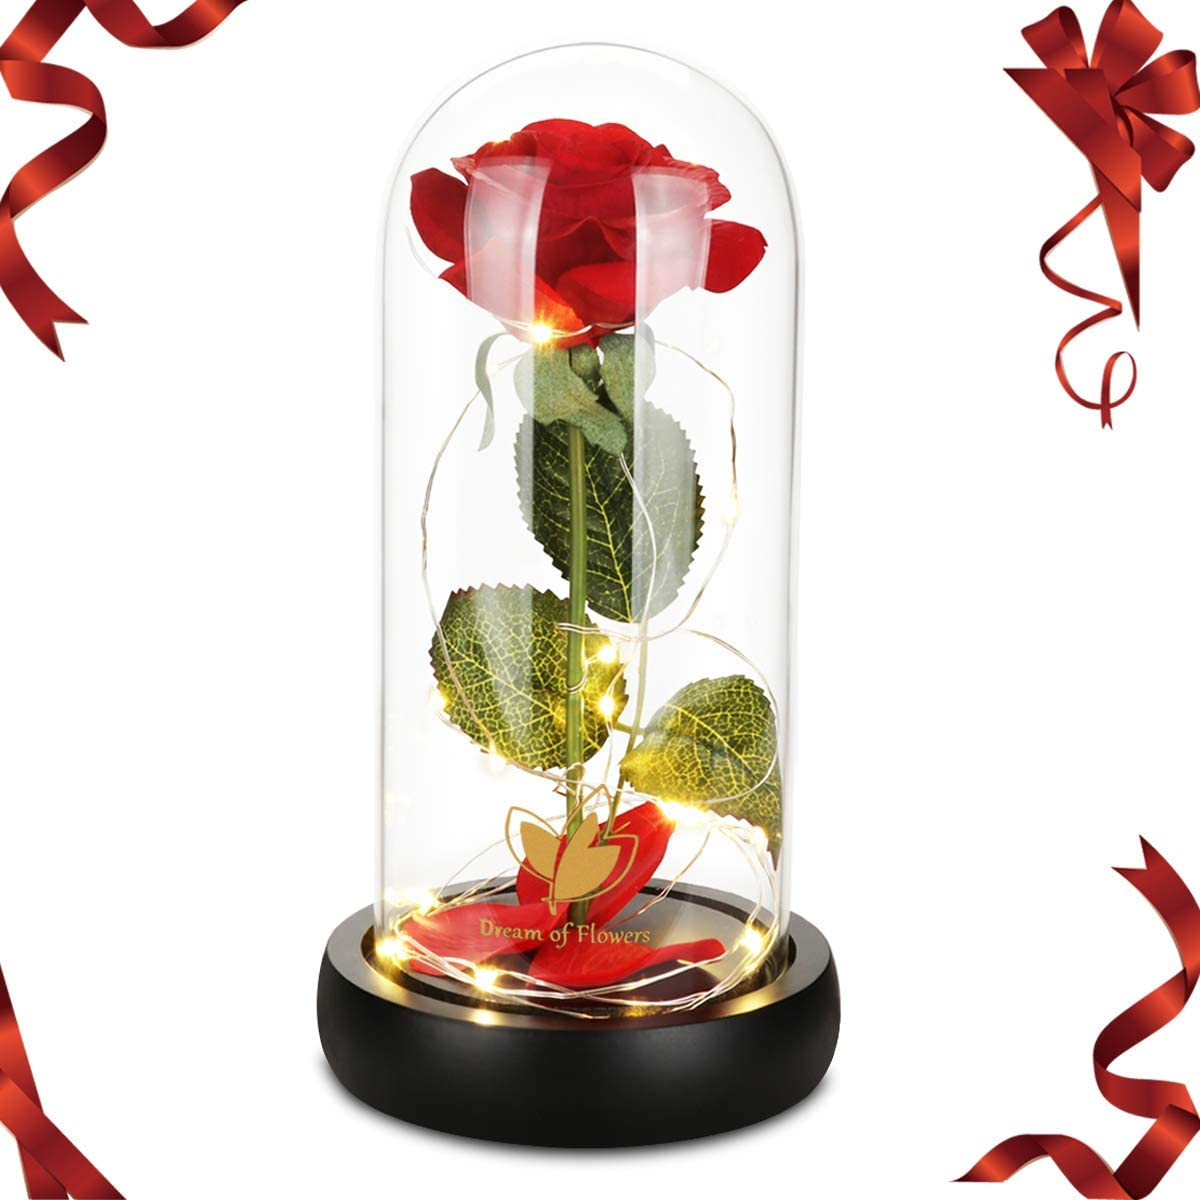 Beauty and the Beast Rose, Enchanted Red Silk Rose with Fallen Petals in Glass Dome on a Wooden Base Best Gift for Home/Office or Home Decorations, Anniversary, Birthday Gift, Mother's Day Gifts